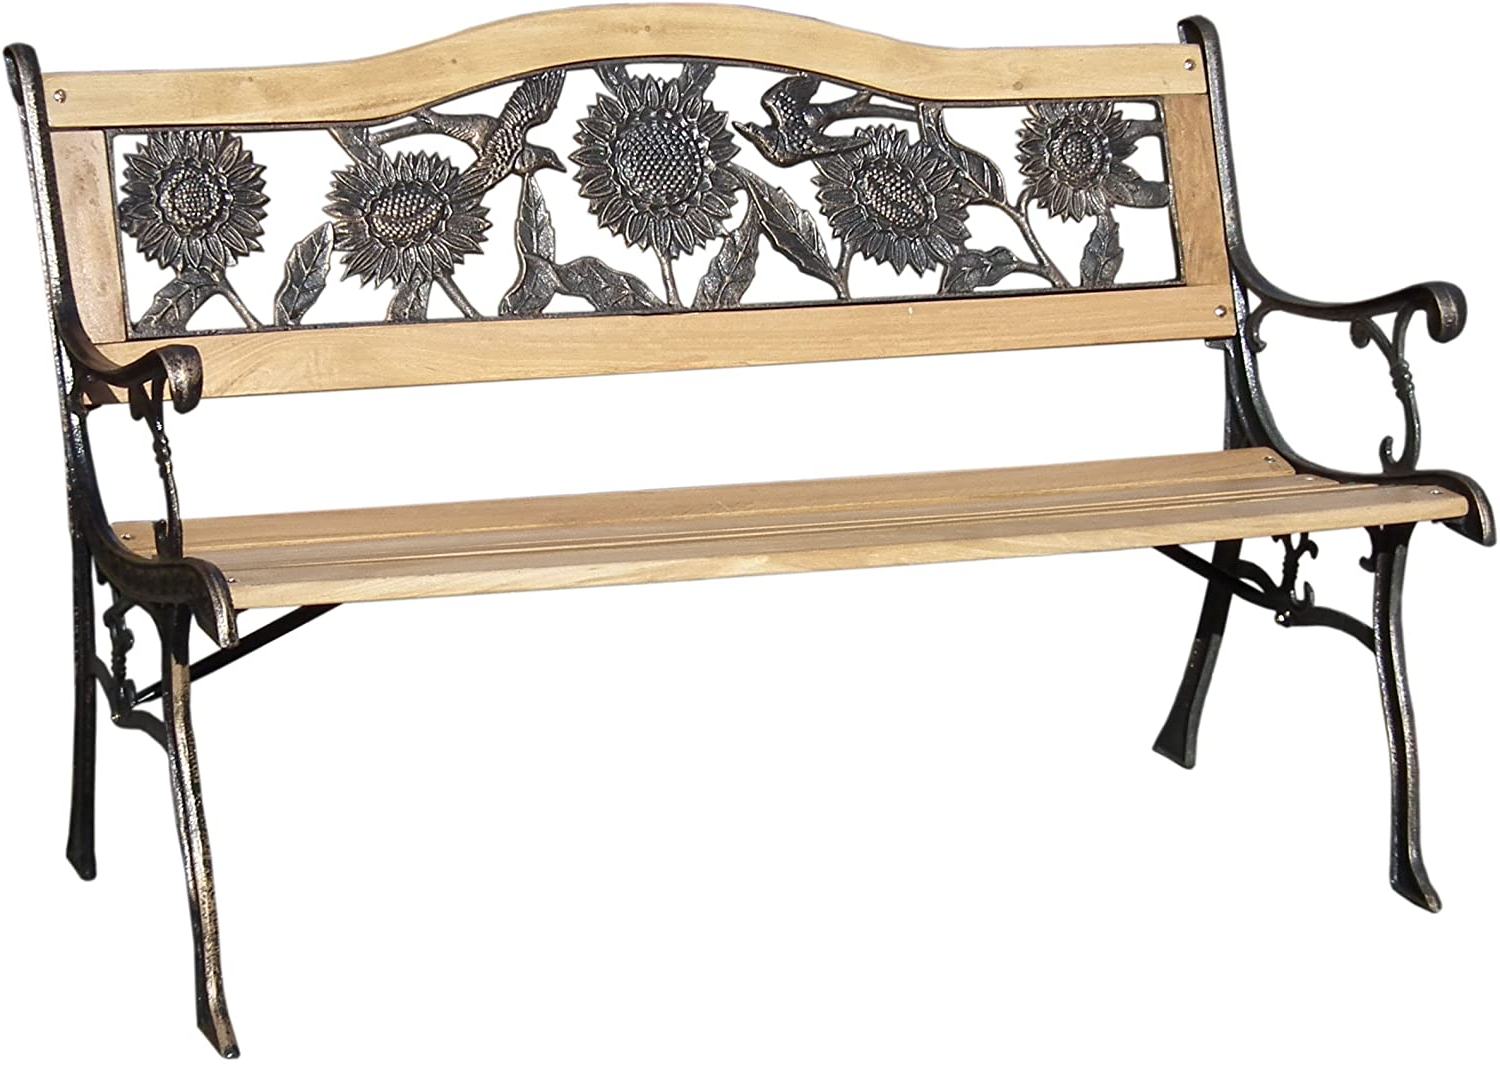 Outdoor Garden Park Bench Cast Iron & Wooden Frame With Sunflower Backrest Throughout Most Current Michelle Metal Garden Benches (View 3 of 30)